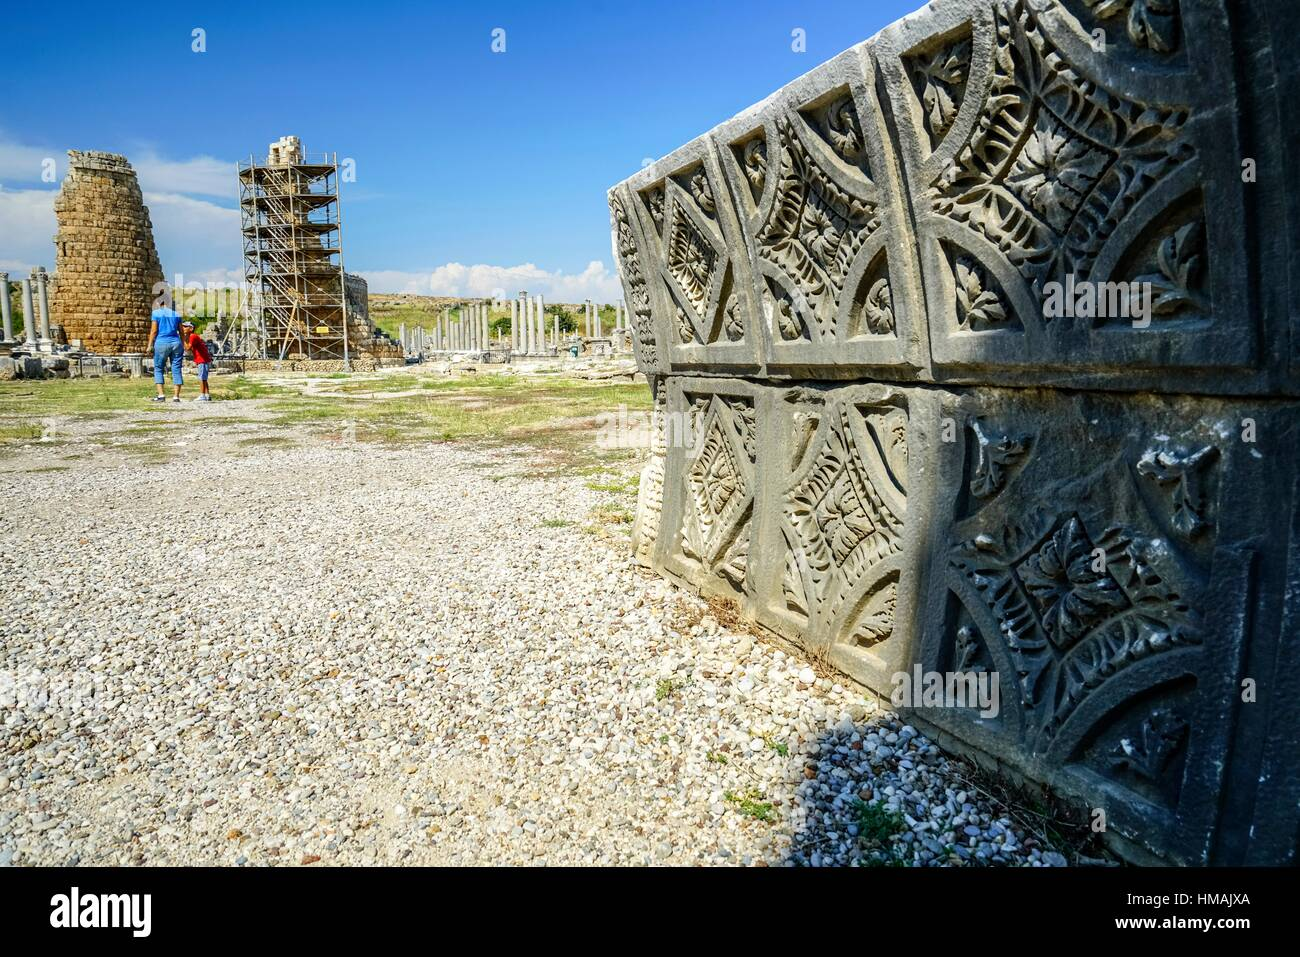 Hellenistic Gate of Perge, Old capital of Pamphylia Secunda. Ancient Greece. Asia Minor. Turkey - Stock Image